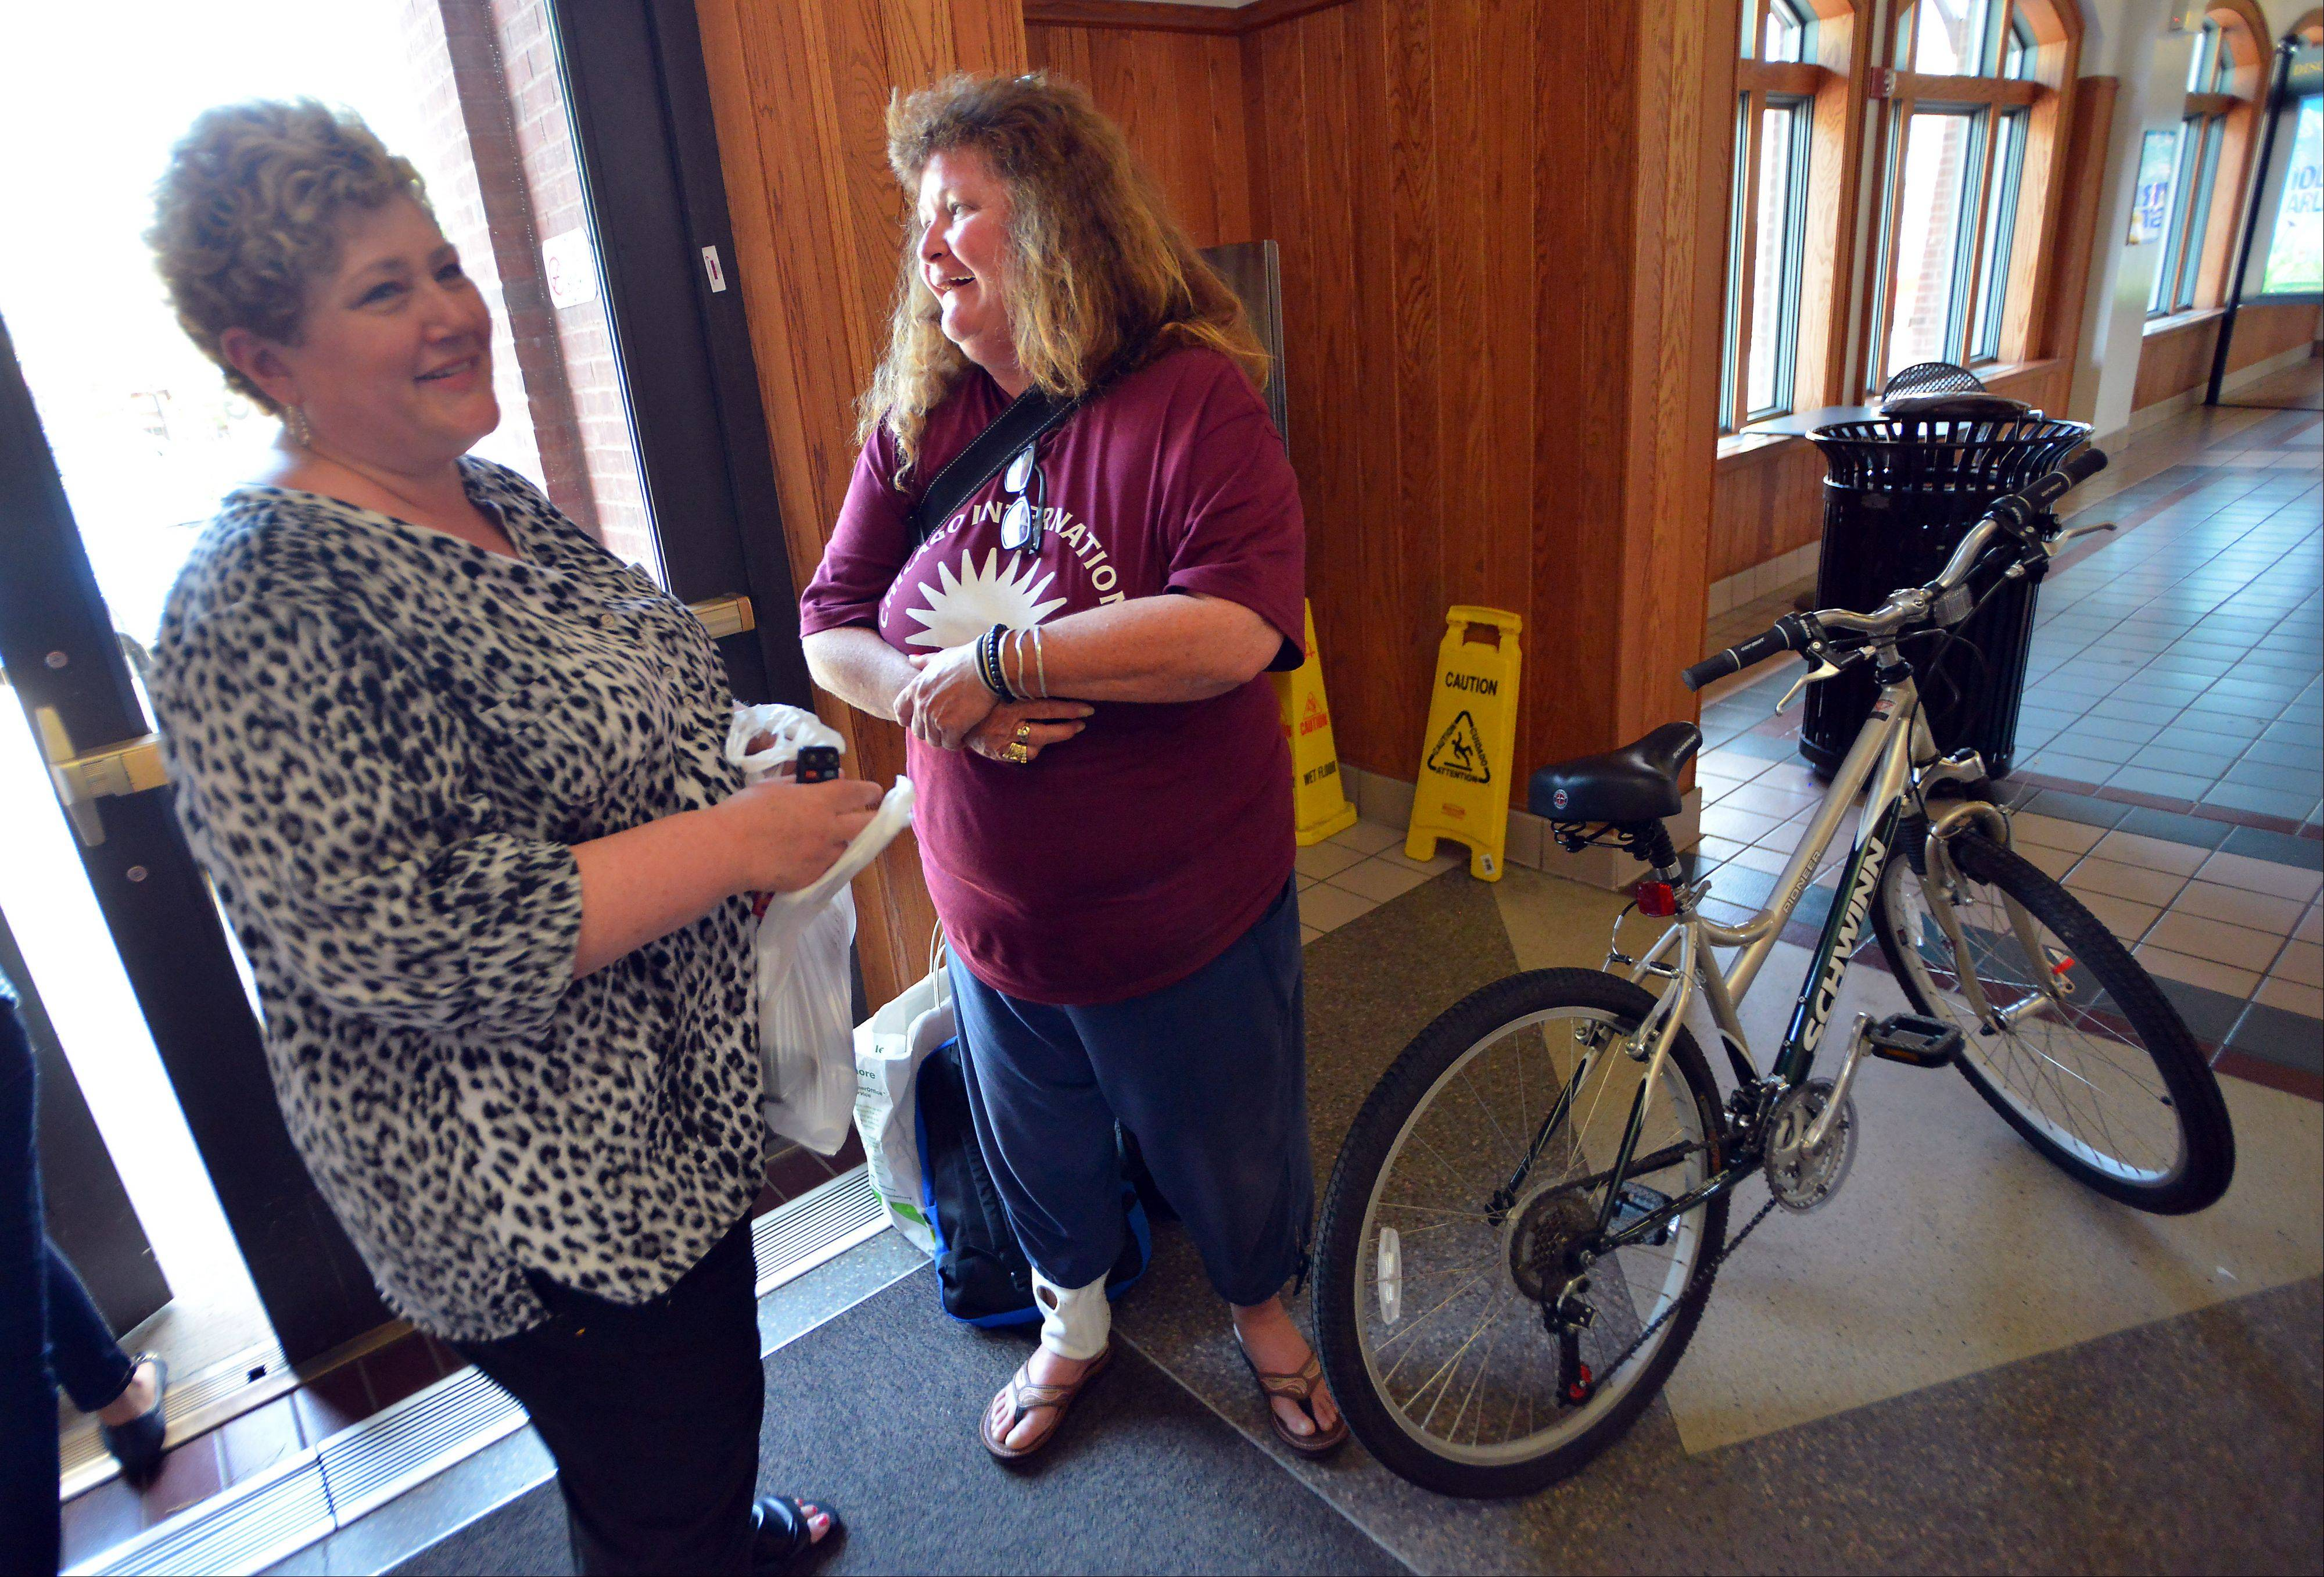 Kathy Kelly of Hoffman Estates, left, gave Rosan Acosta the bike she bought a year ago but barely used. Acosta lost her bike to an arsonist this week.